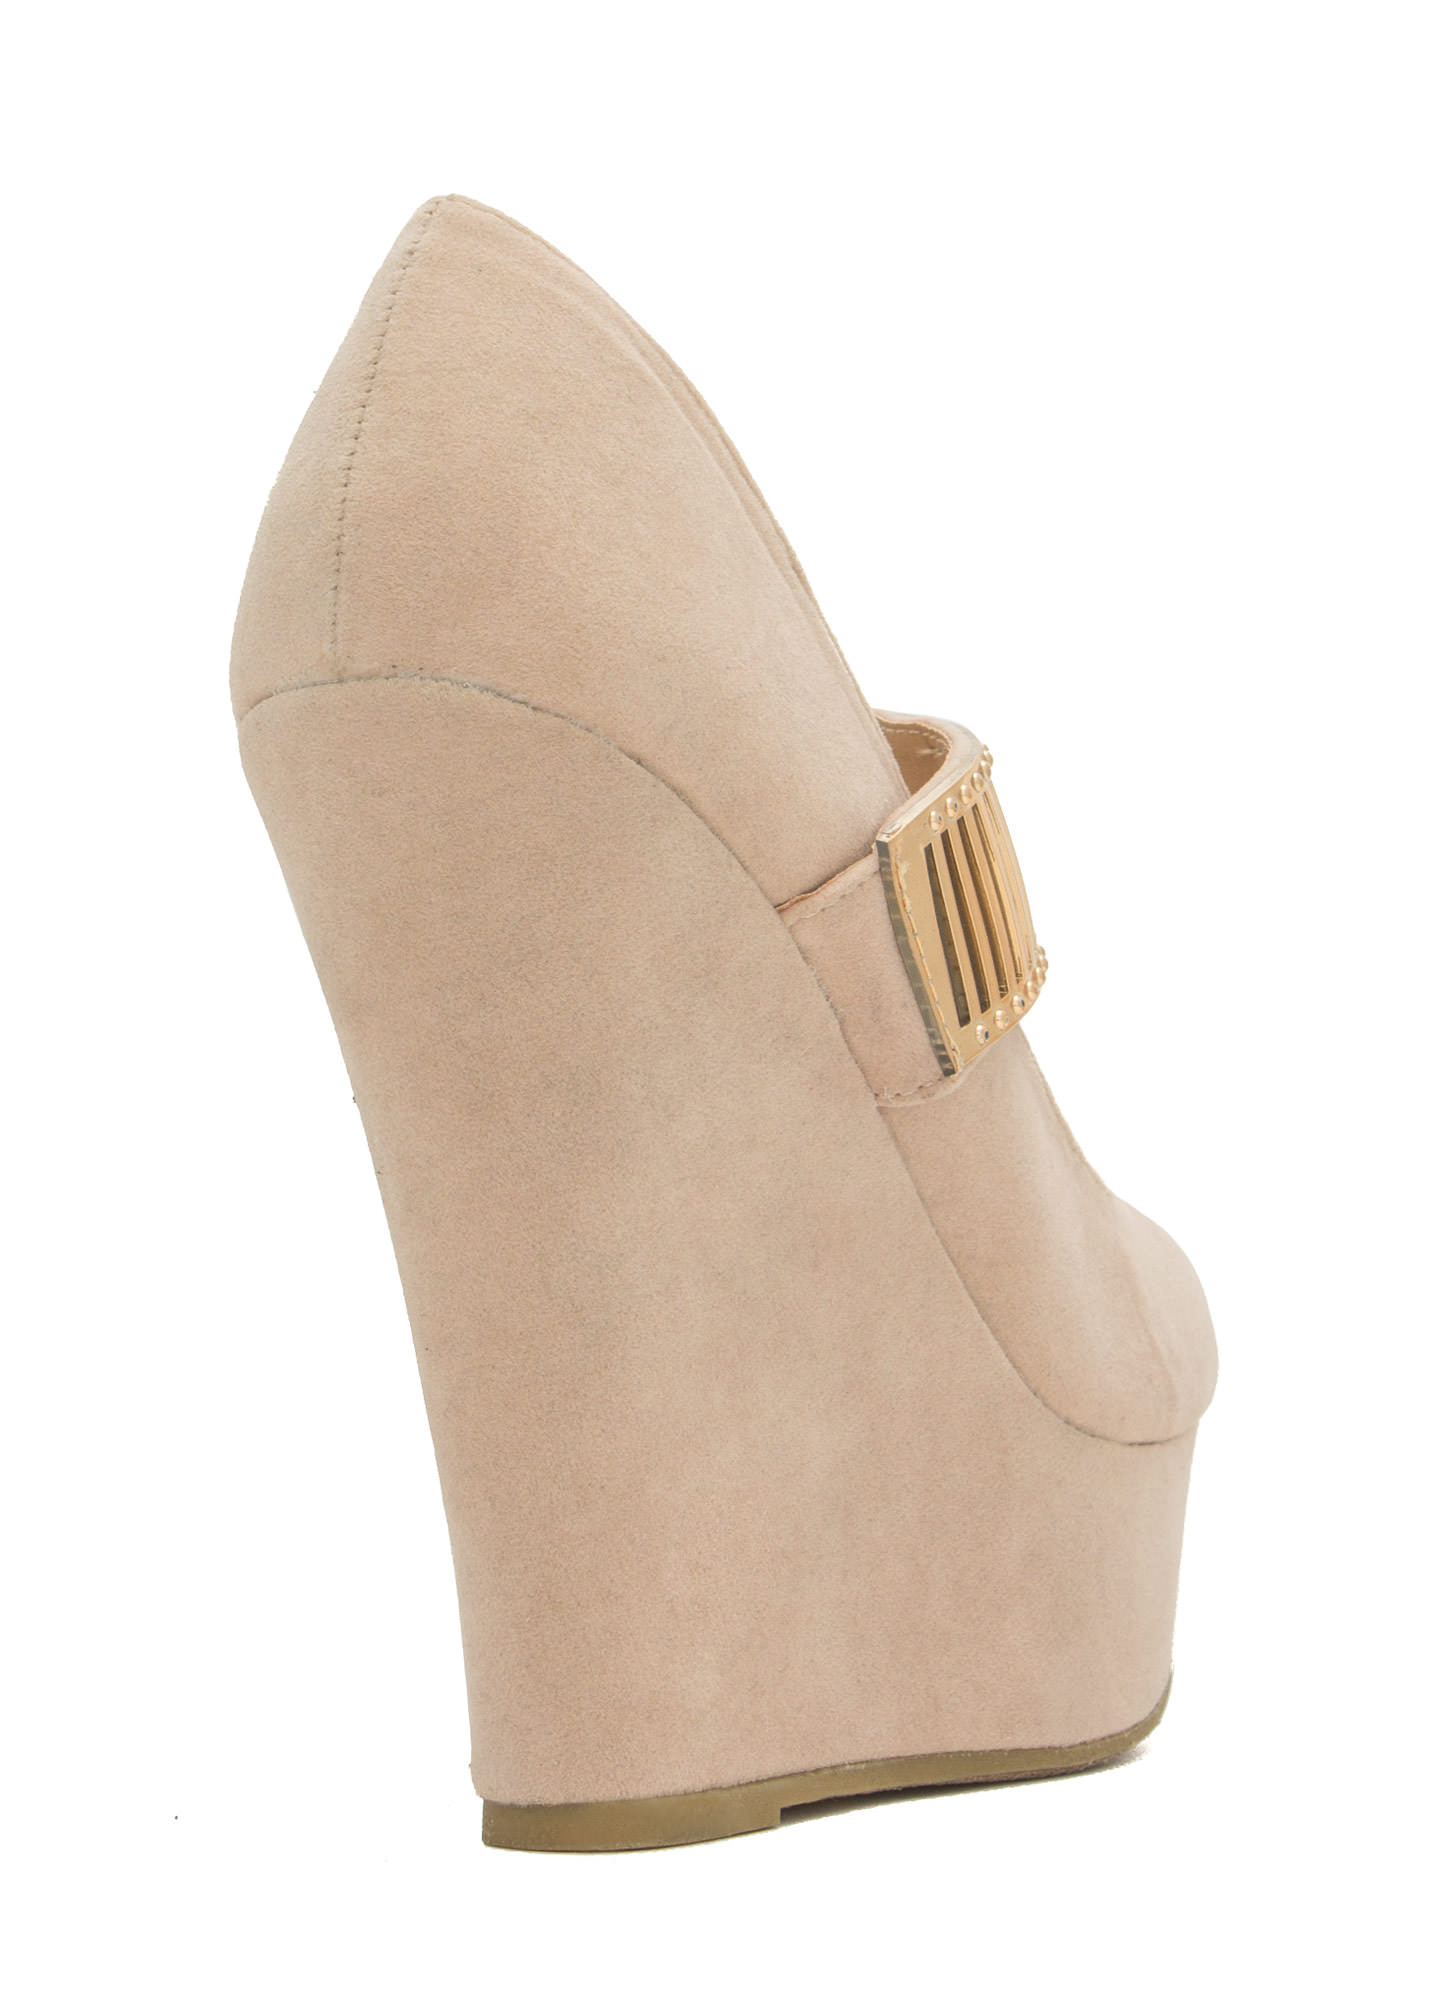 Let's Vent Plated Strap Platform Wedges NUDE